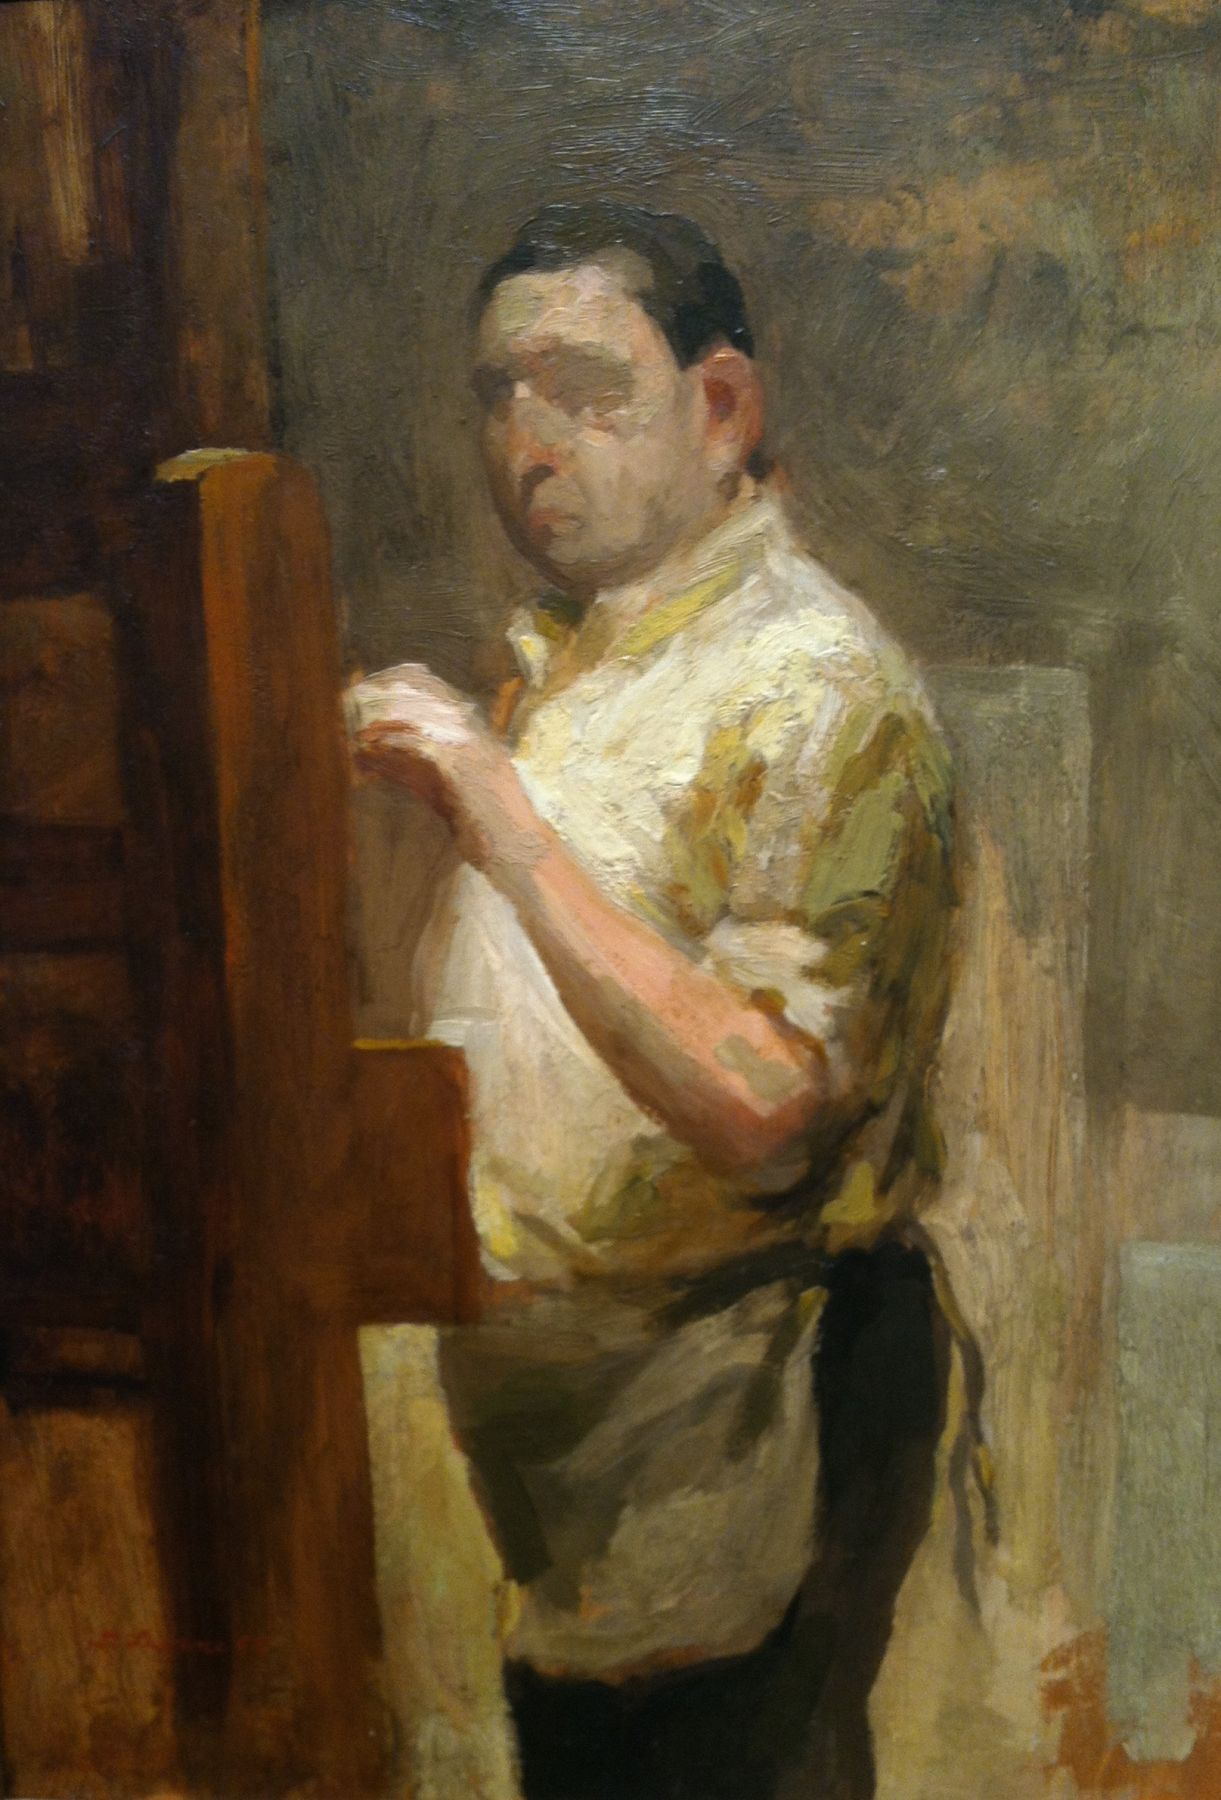 David Levine, Self-Portrait, 1969, oil on panel, 12 x 8 inches